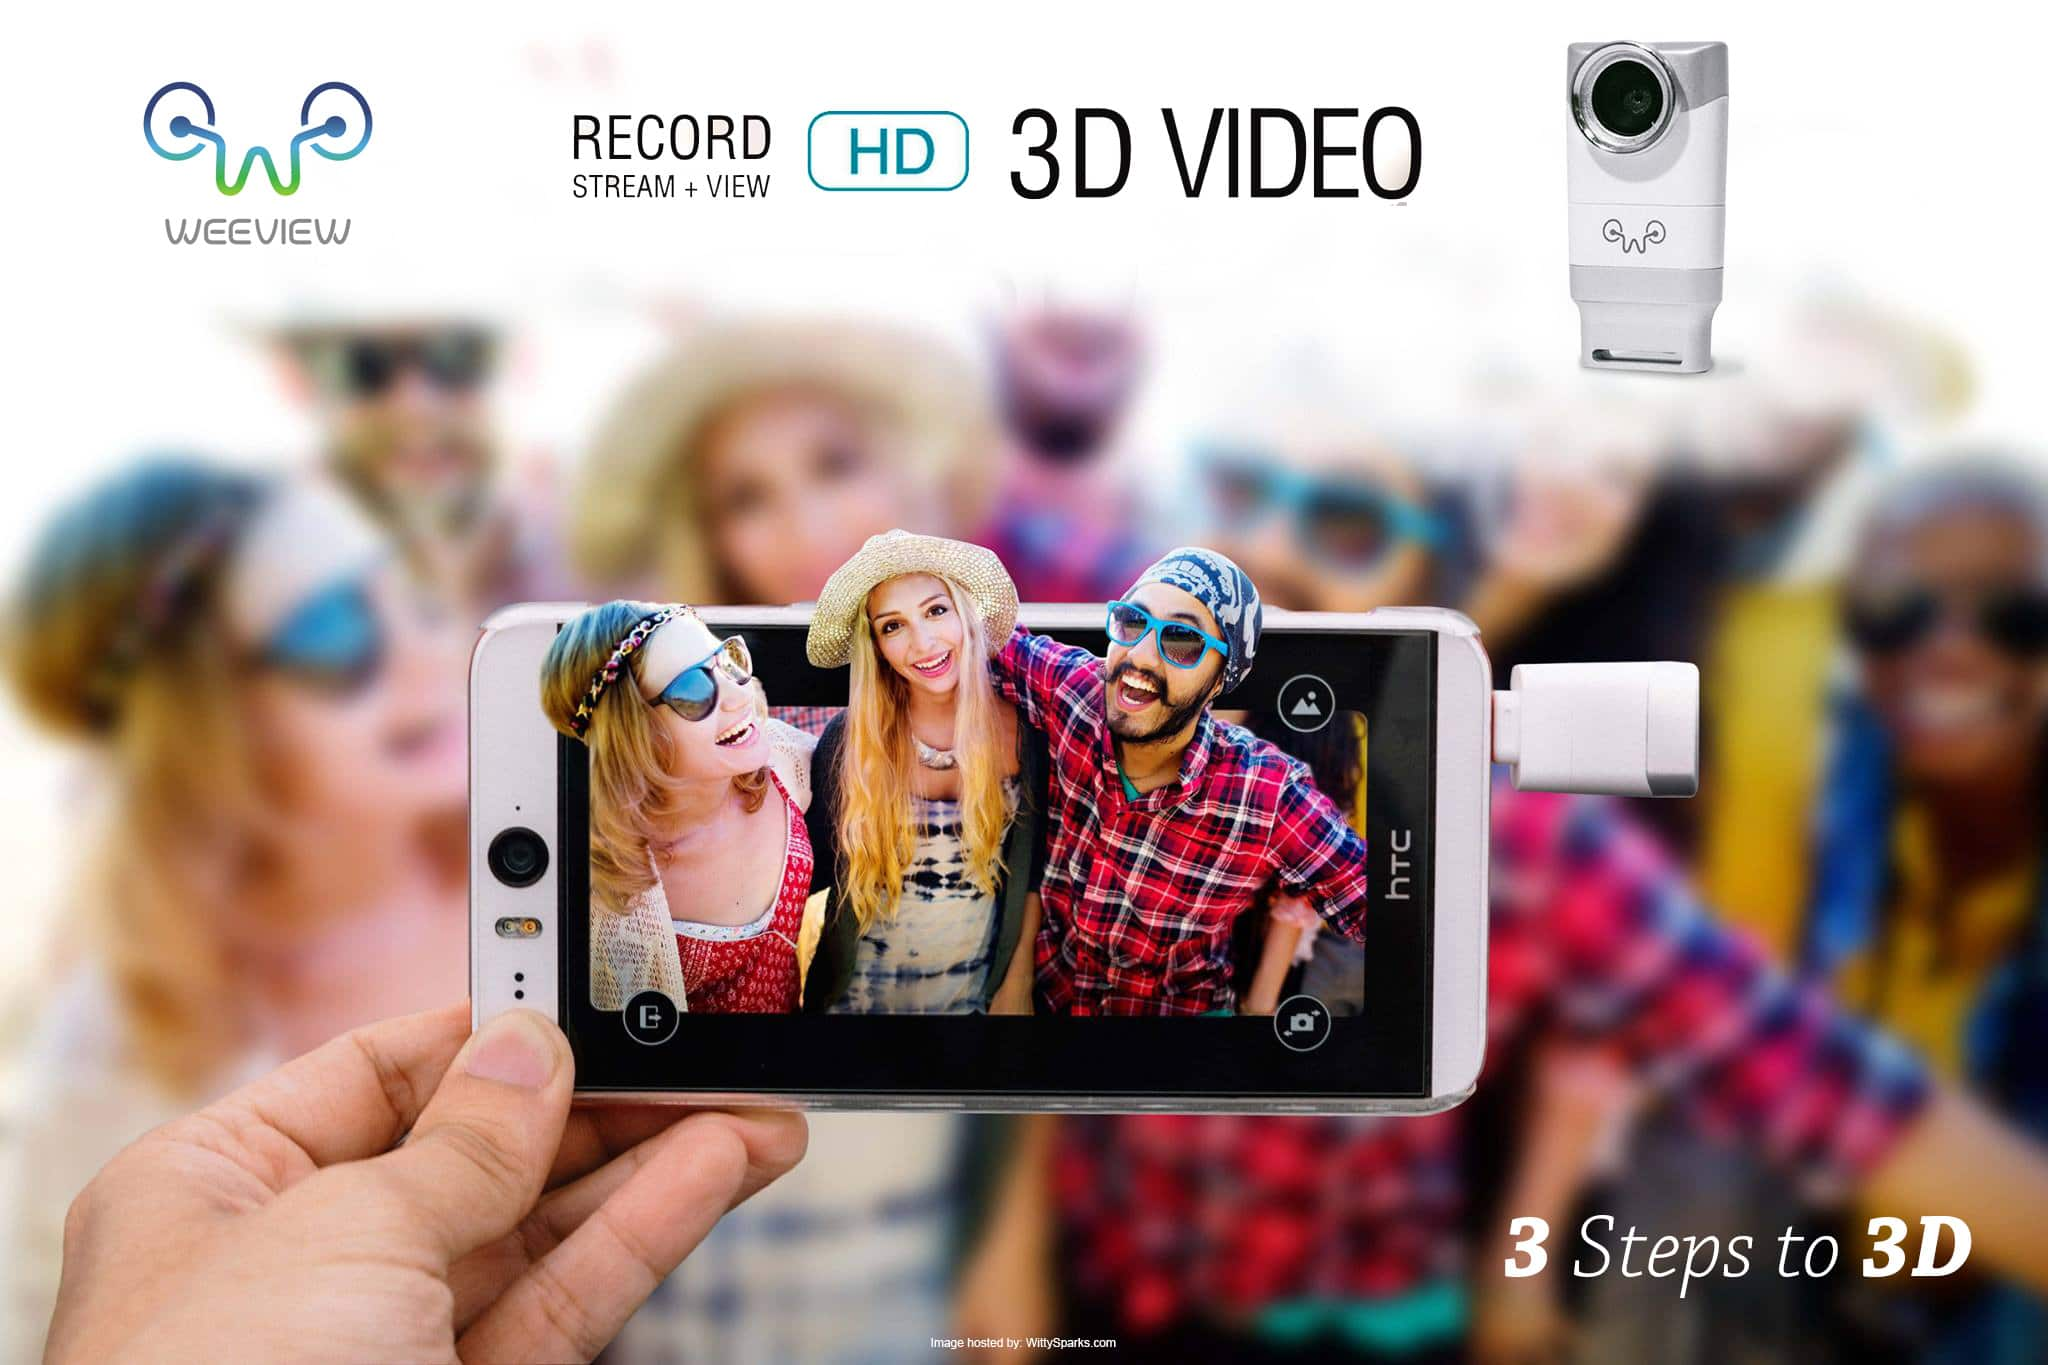 Weeview - 3D video recording device or gadget